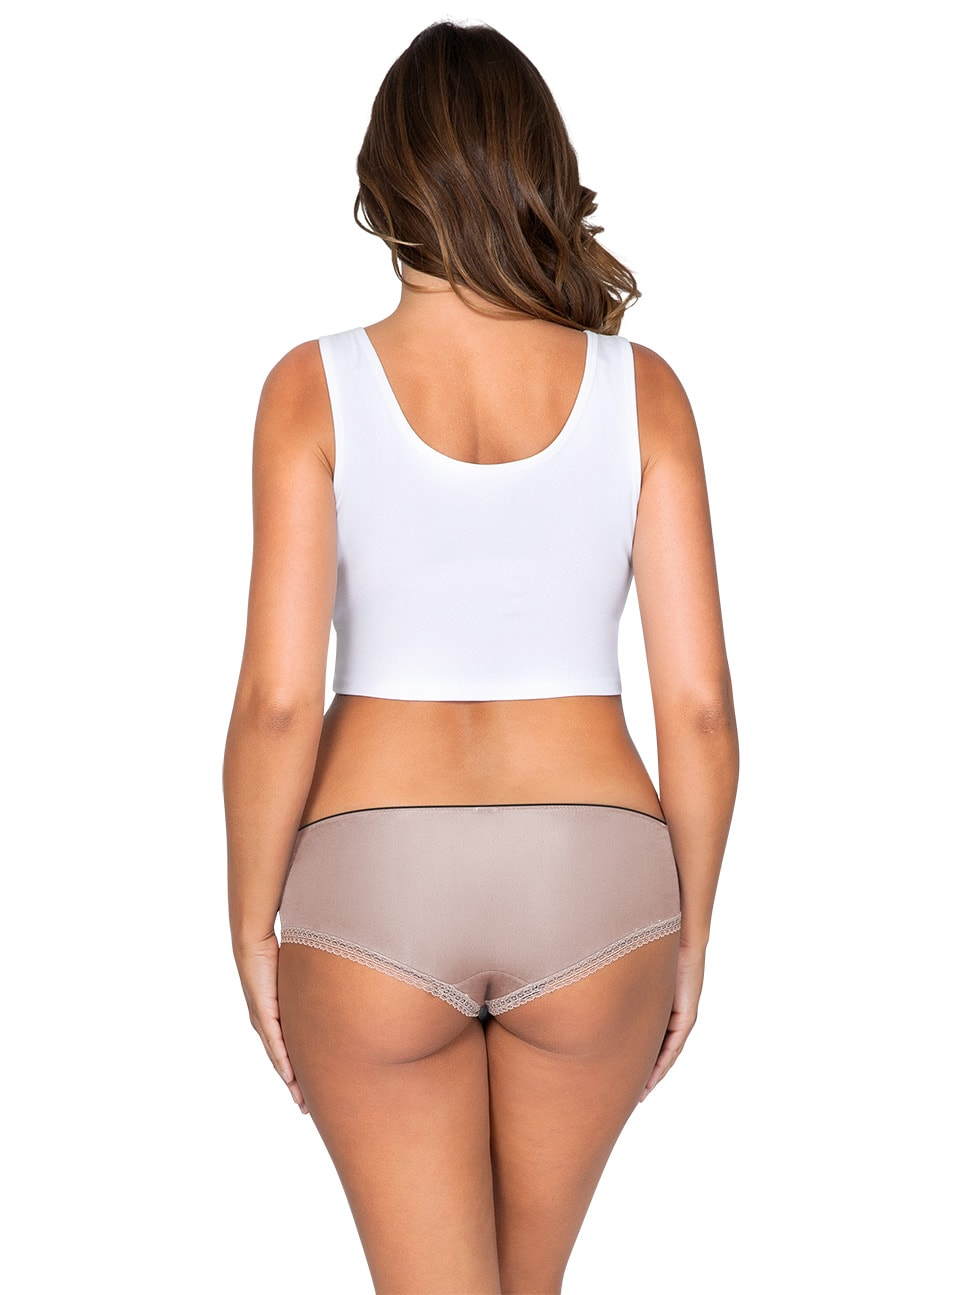 ParfaitPantyHipster PP501 B NudeBack - So Lovely Hipster European Nude PP501